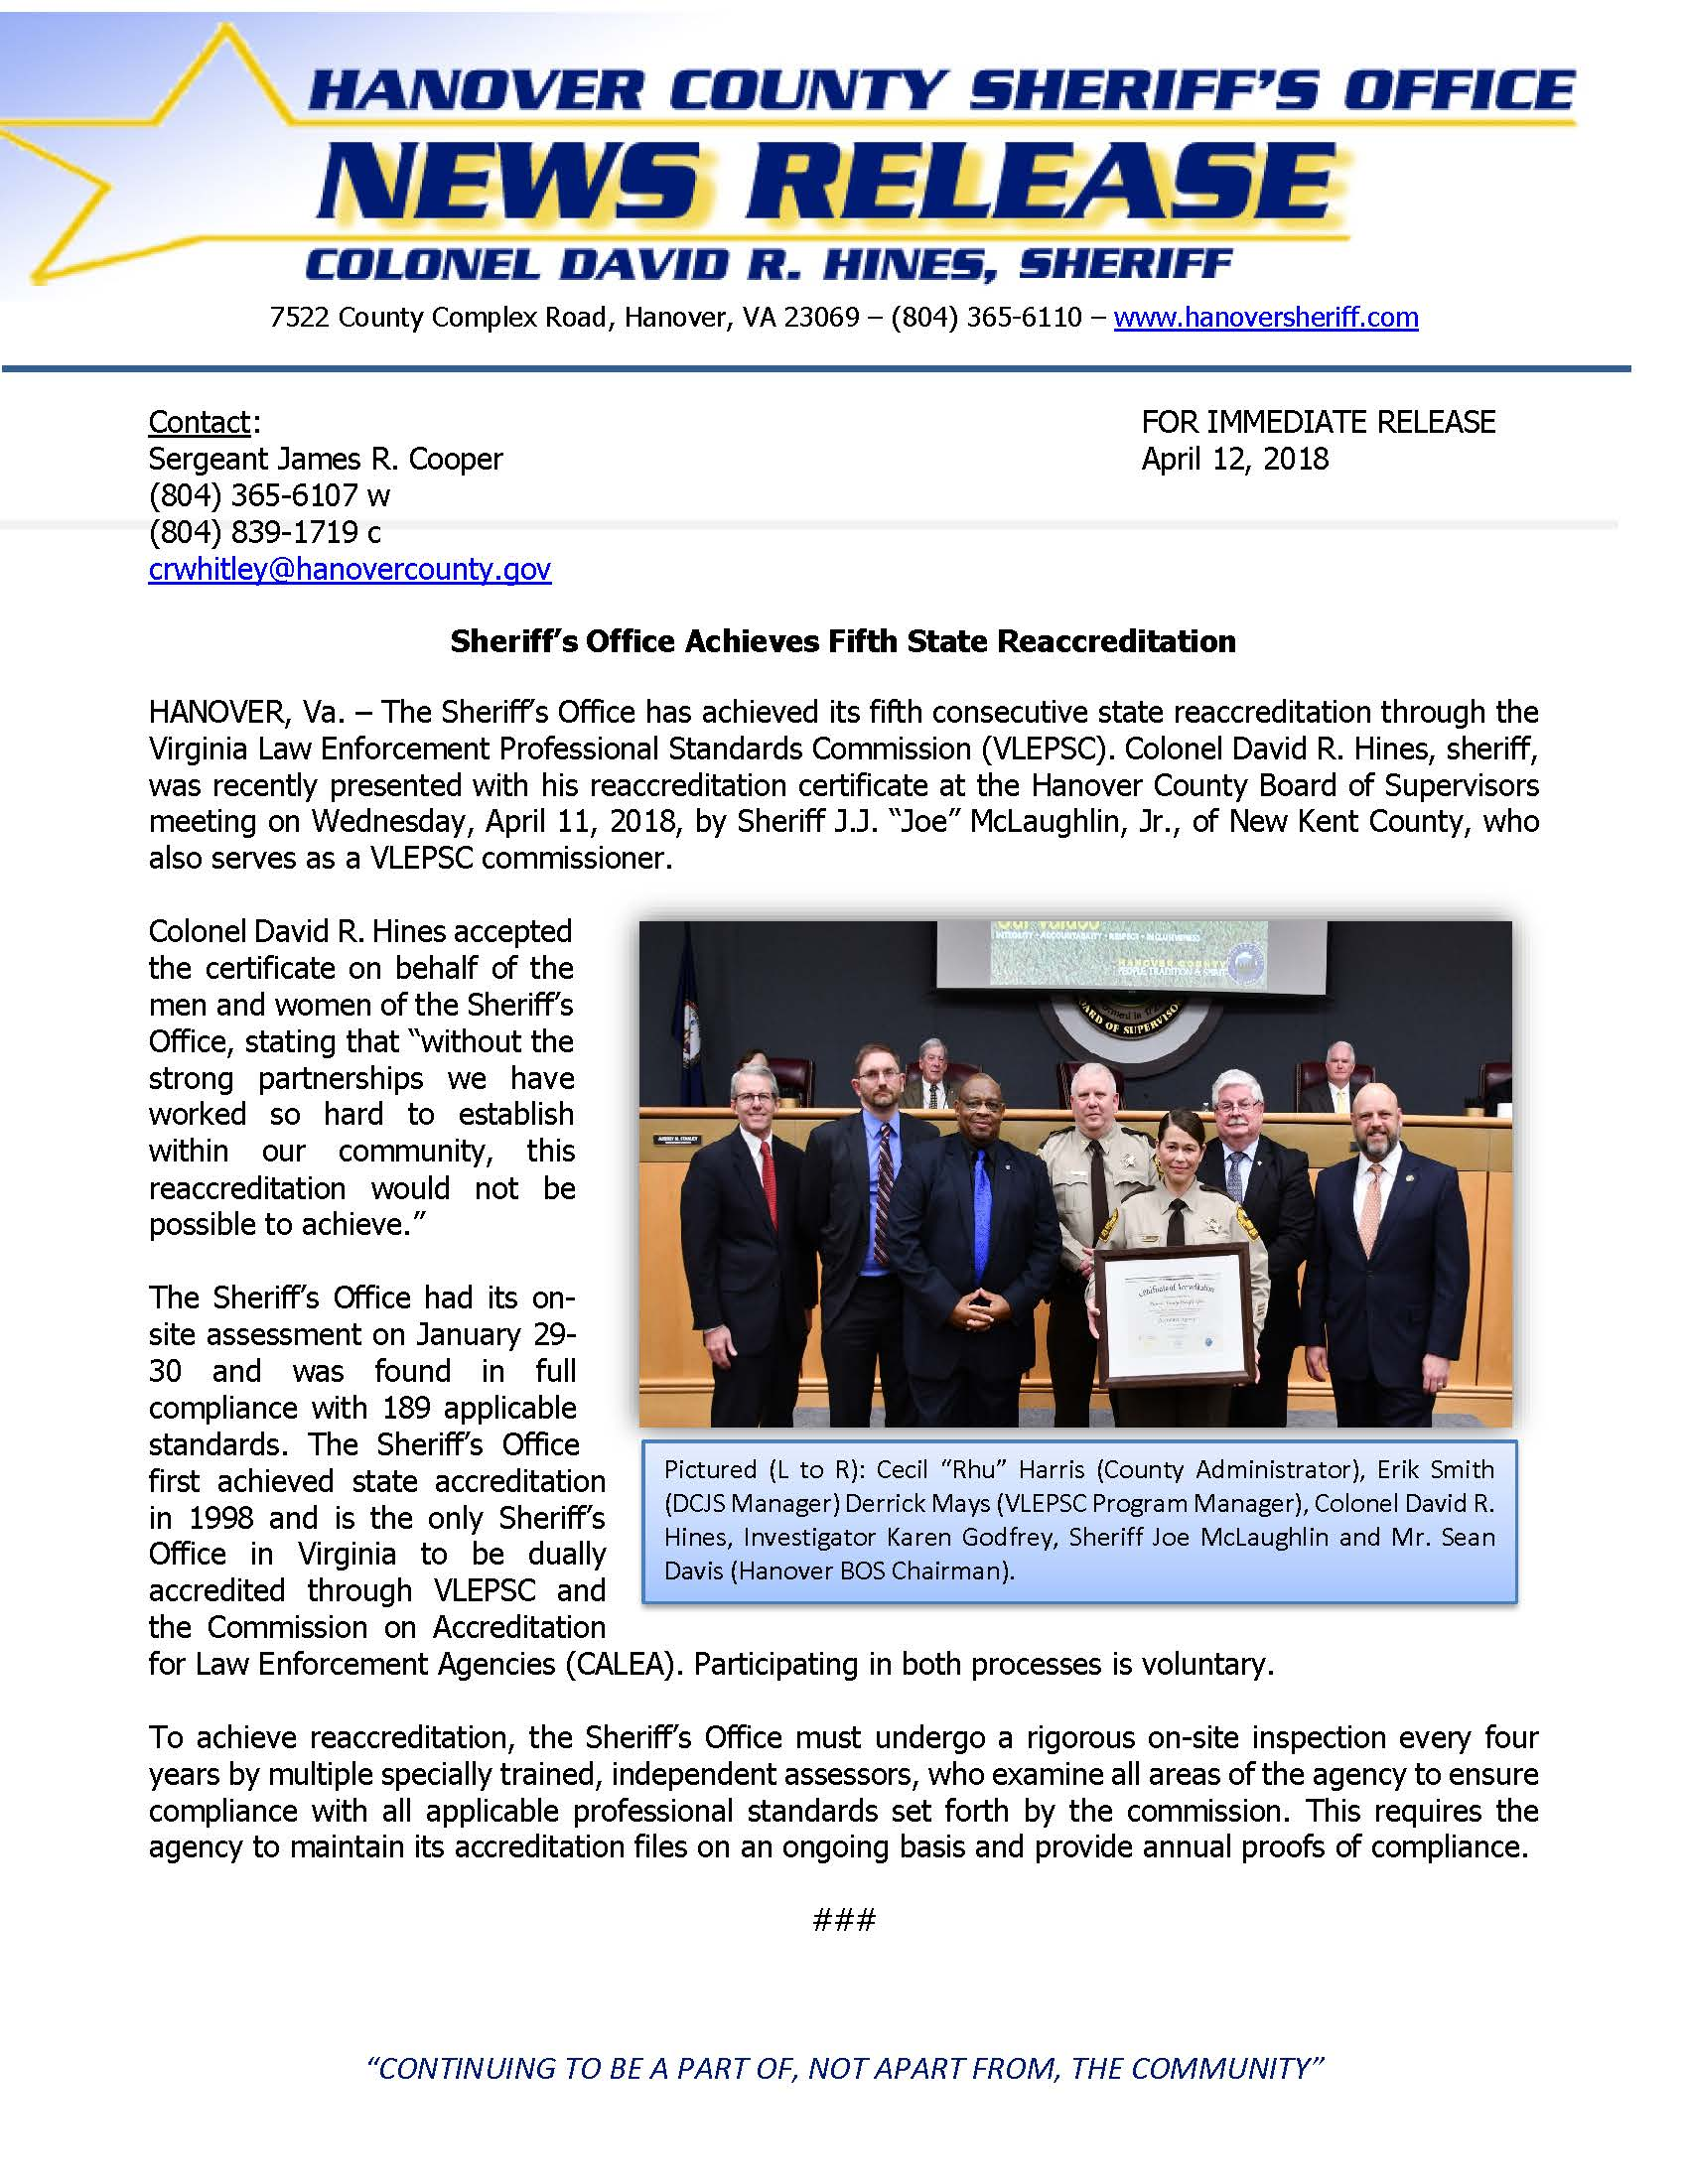 HCSO Achieves State Reaccreditation- April 12, 2018